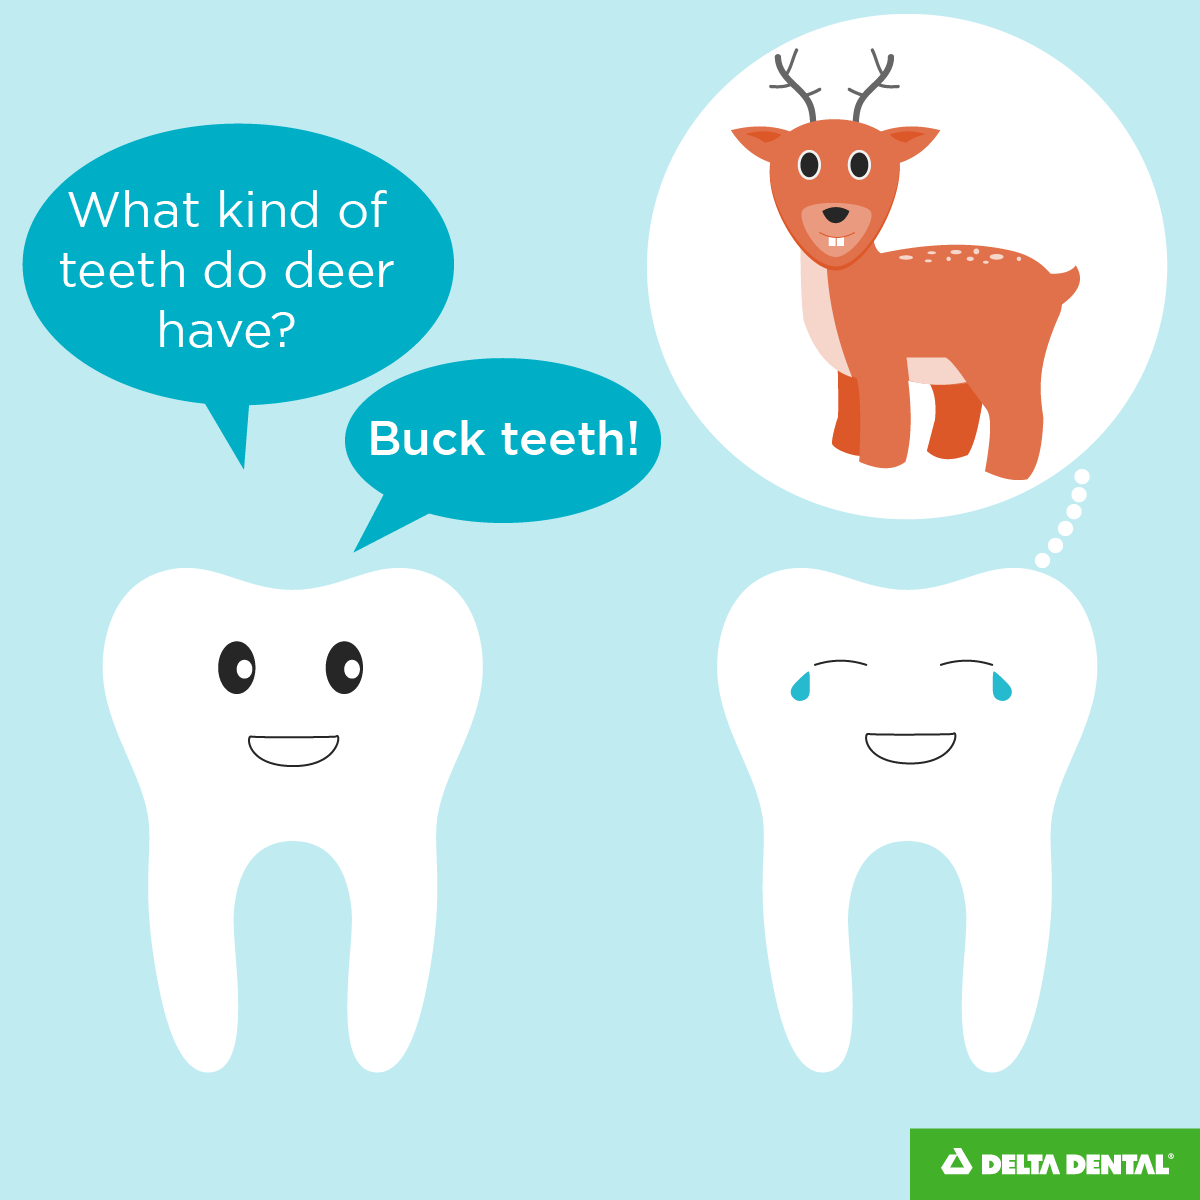 Dental Jokes and Comics to Crack You Up | Smile Often! | Pinterest ...